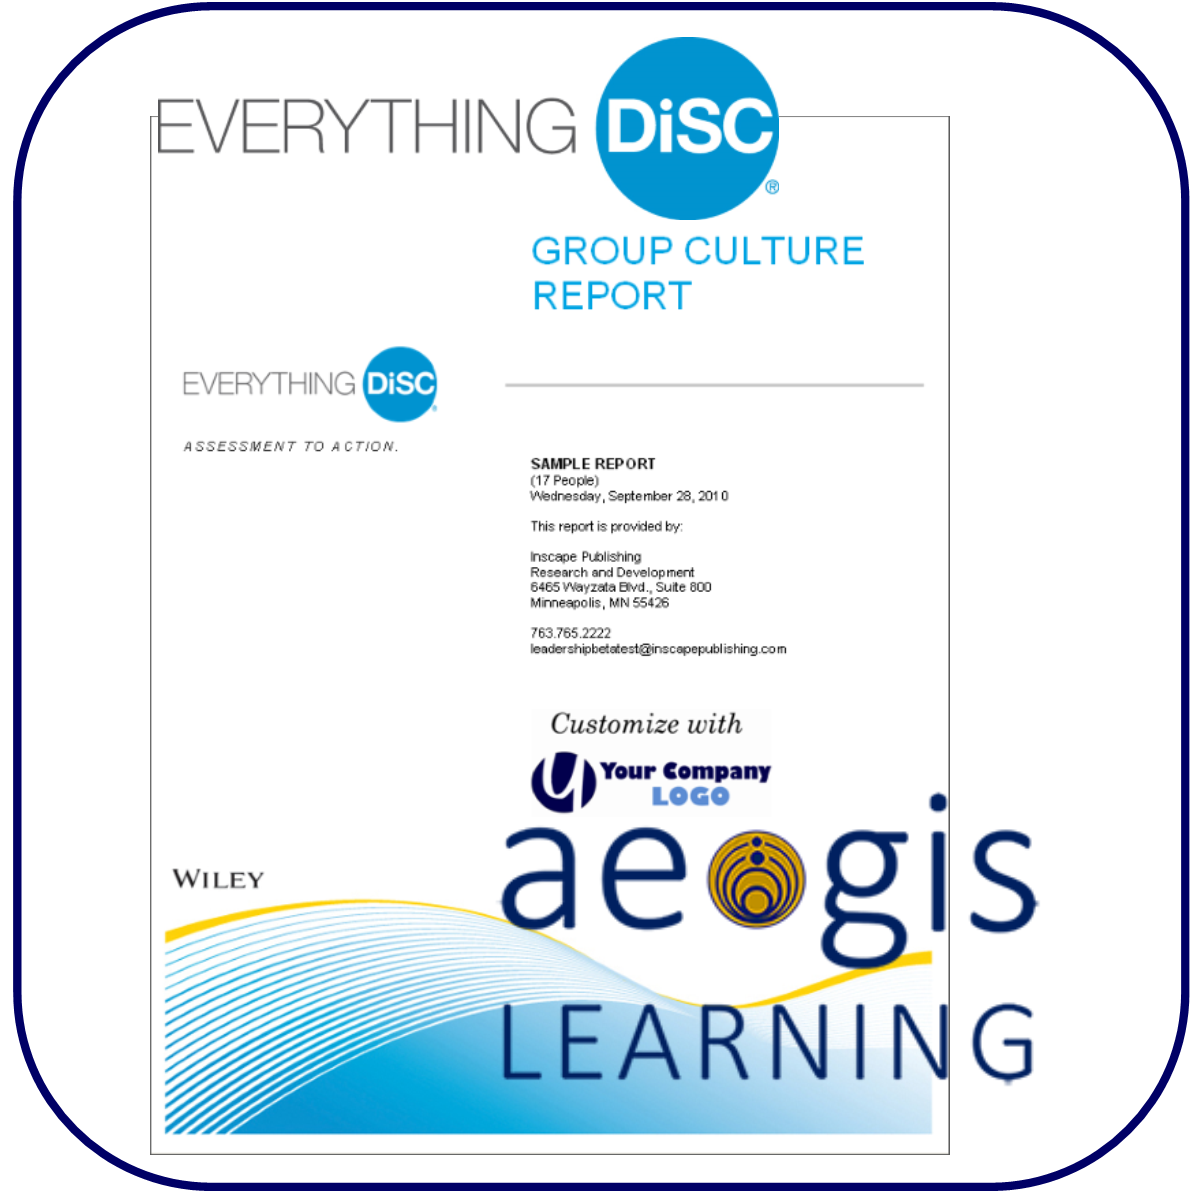 DiSC Group Culture Report